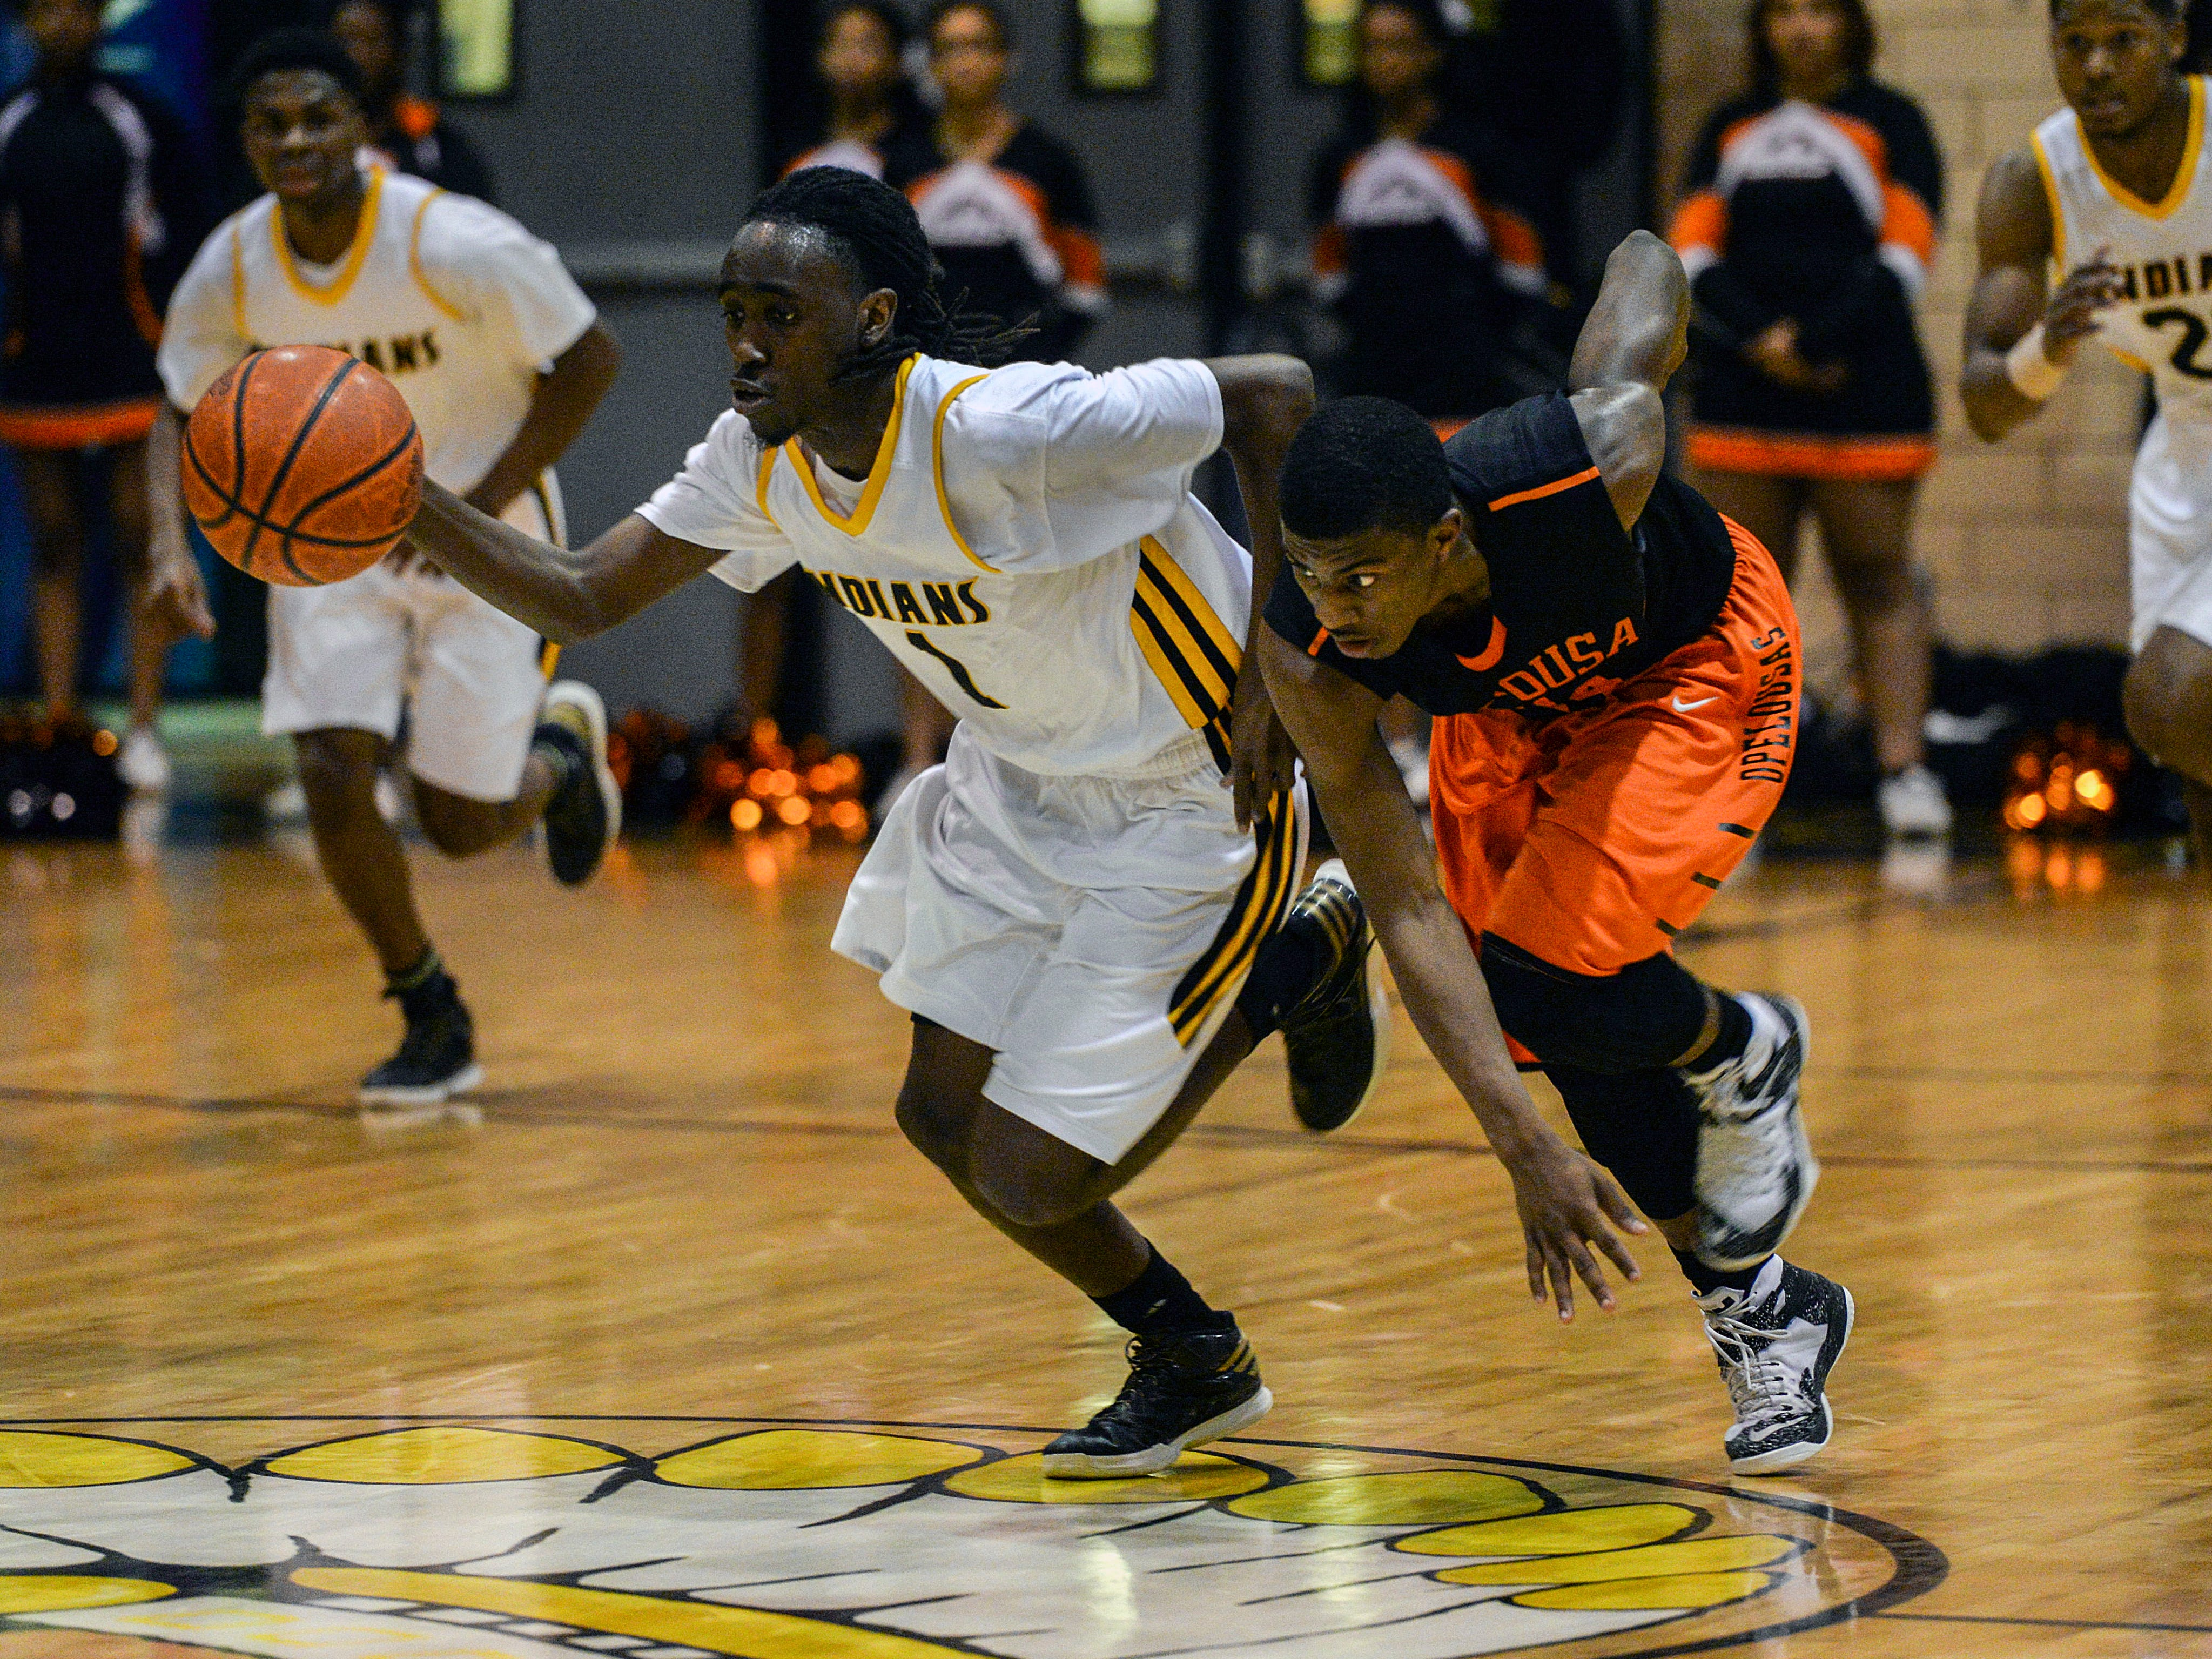 Donnie Perkins of Fair Park makes the fast break with Kaylan Coleman of Opelousas on his heels during their first round playoff game Friday night. Fair Park won 66-53.